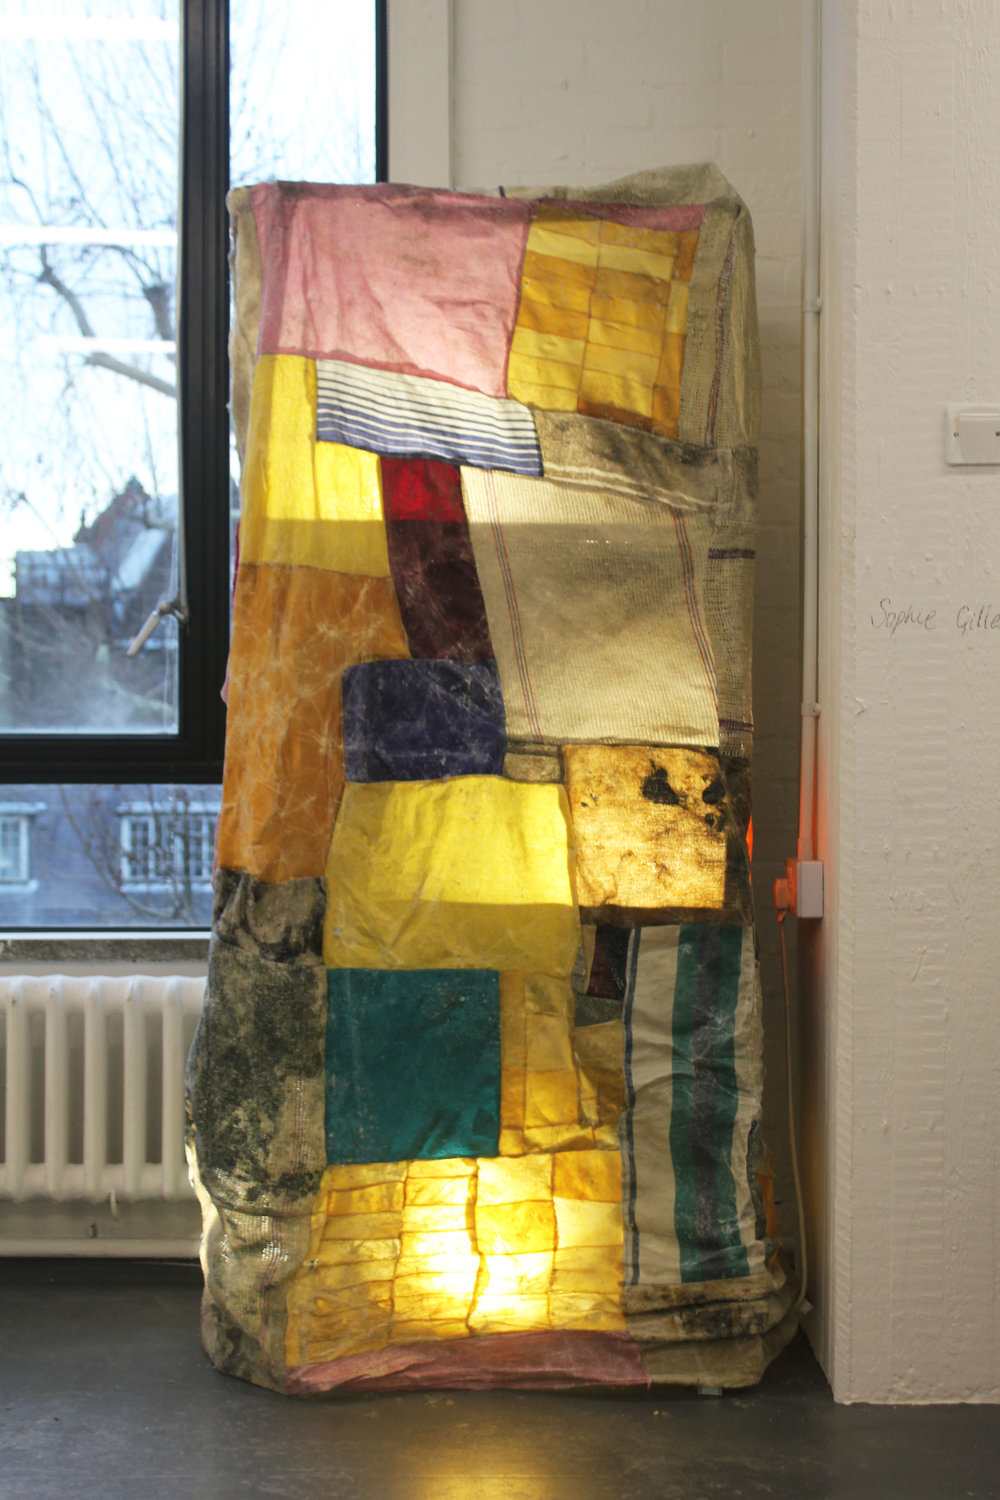 Chamois Lamp, Cloths, Thread, Wax, Metal, Lights, Installed at Royal College Of Art Works In Progress Show, London, January 2019